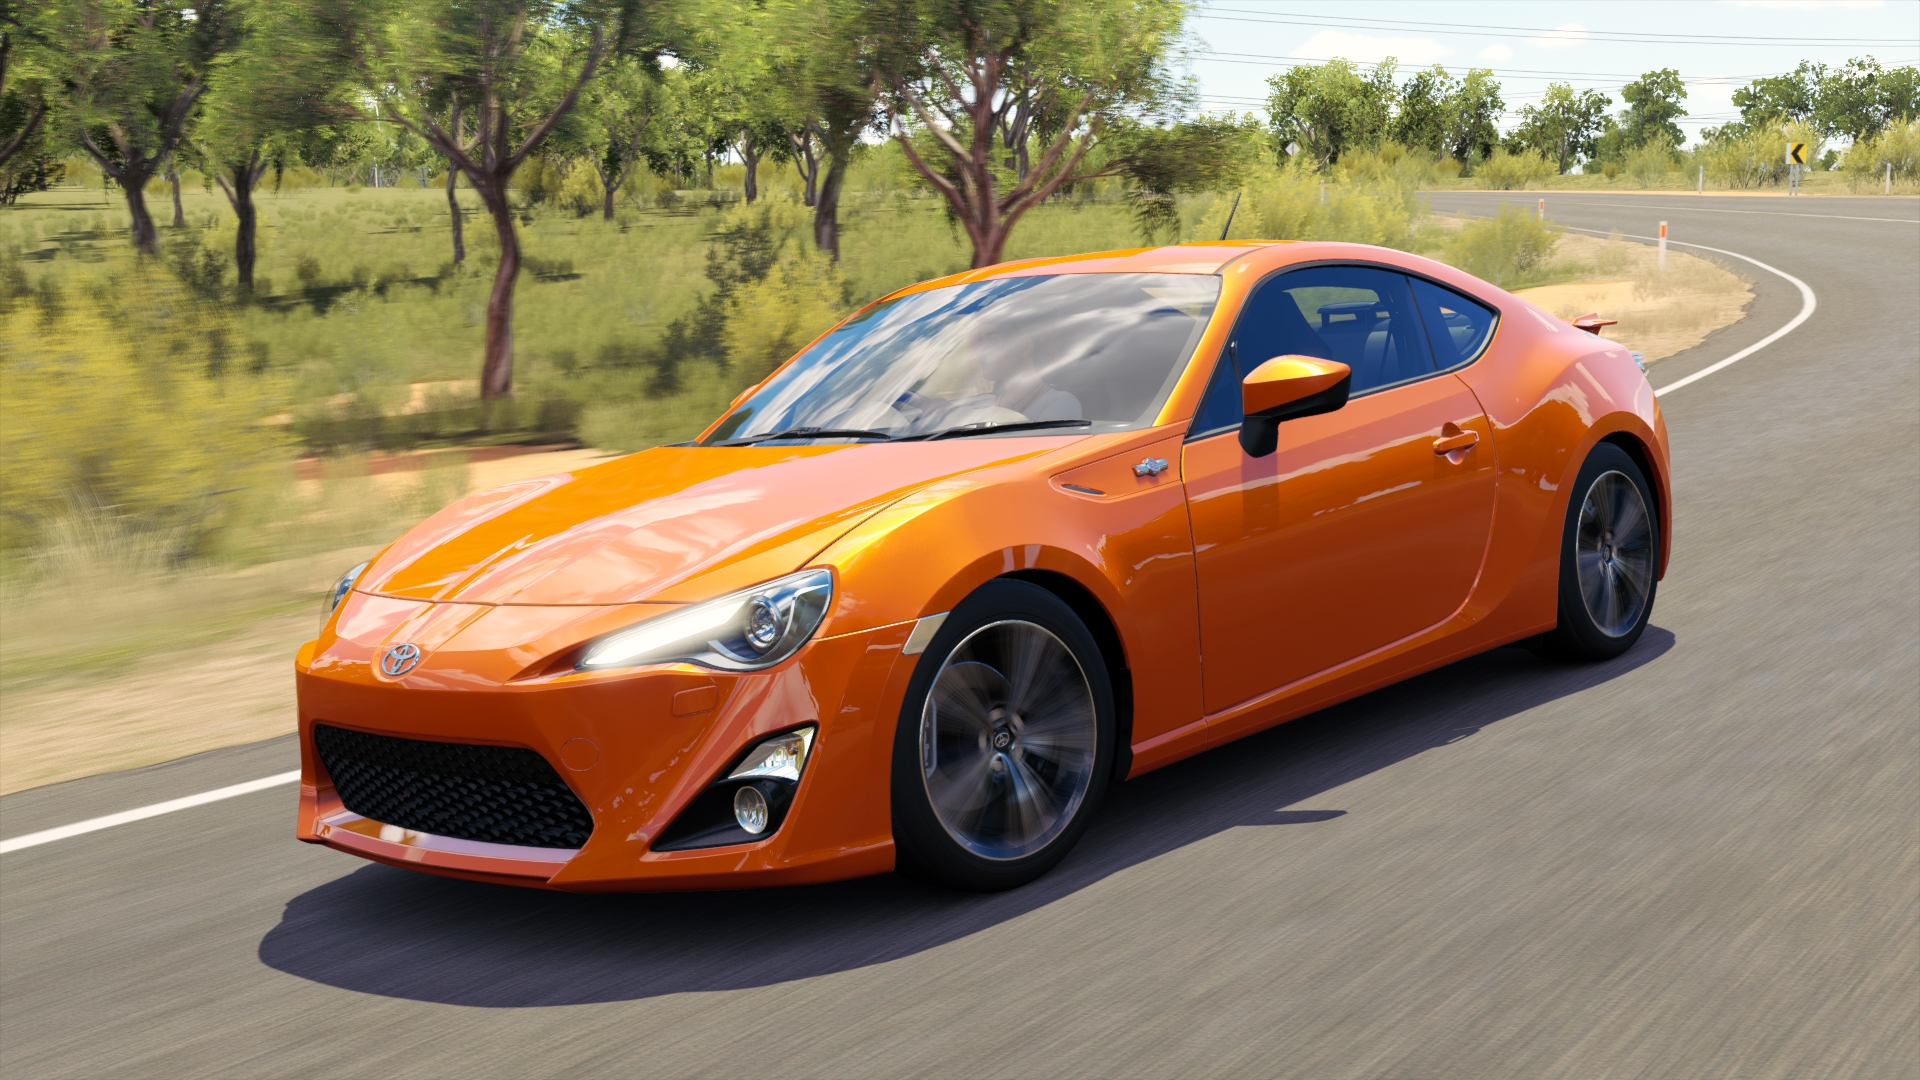 toyota gt86 forza motorsport wiki fandom powered by wikia. Black Bedroom Furniture Sets. Home Design Ideas